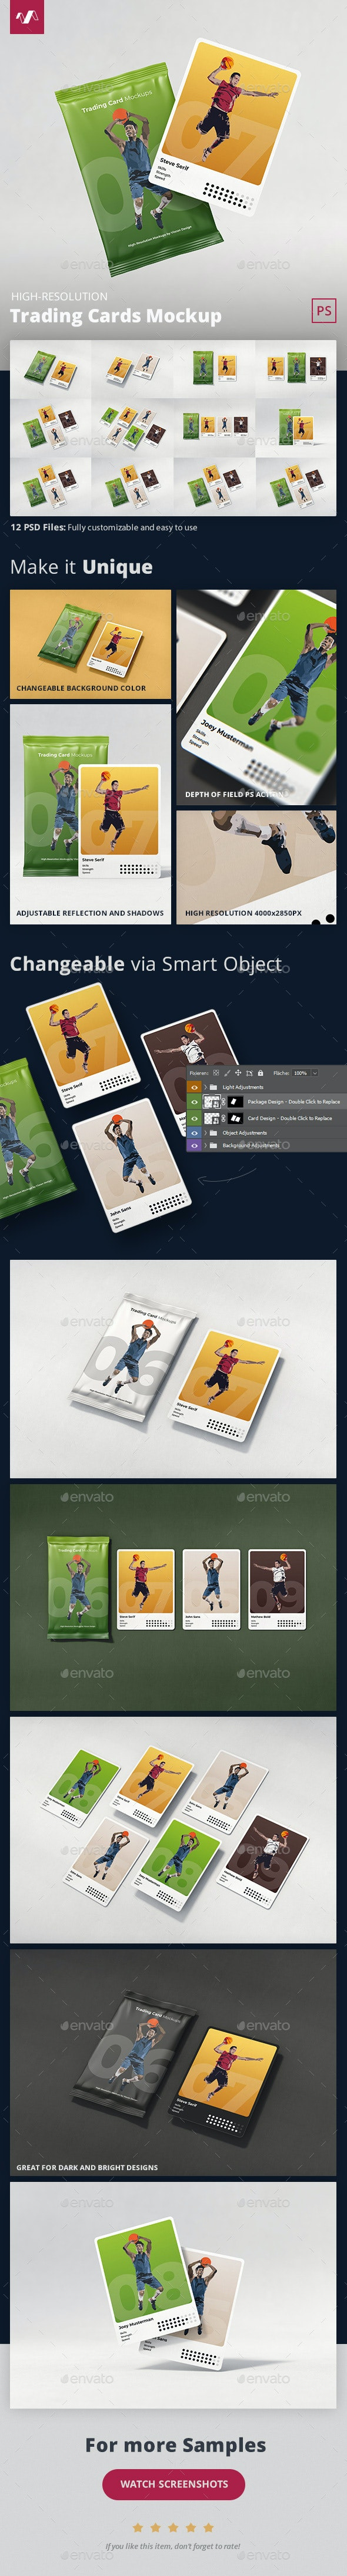 Trading Cards Mockup - Miscellaneous Packaging